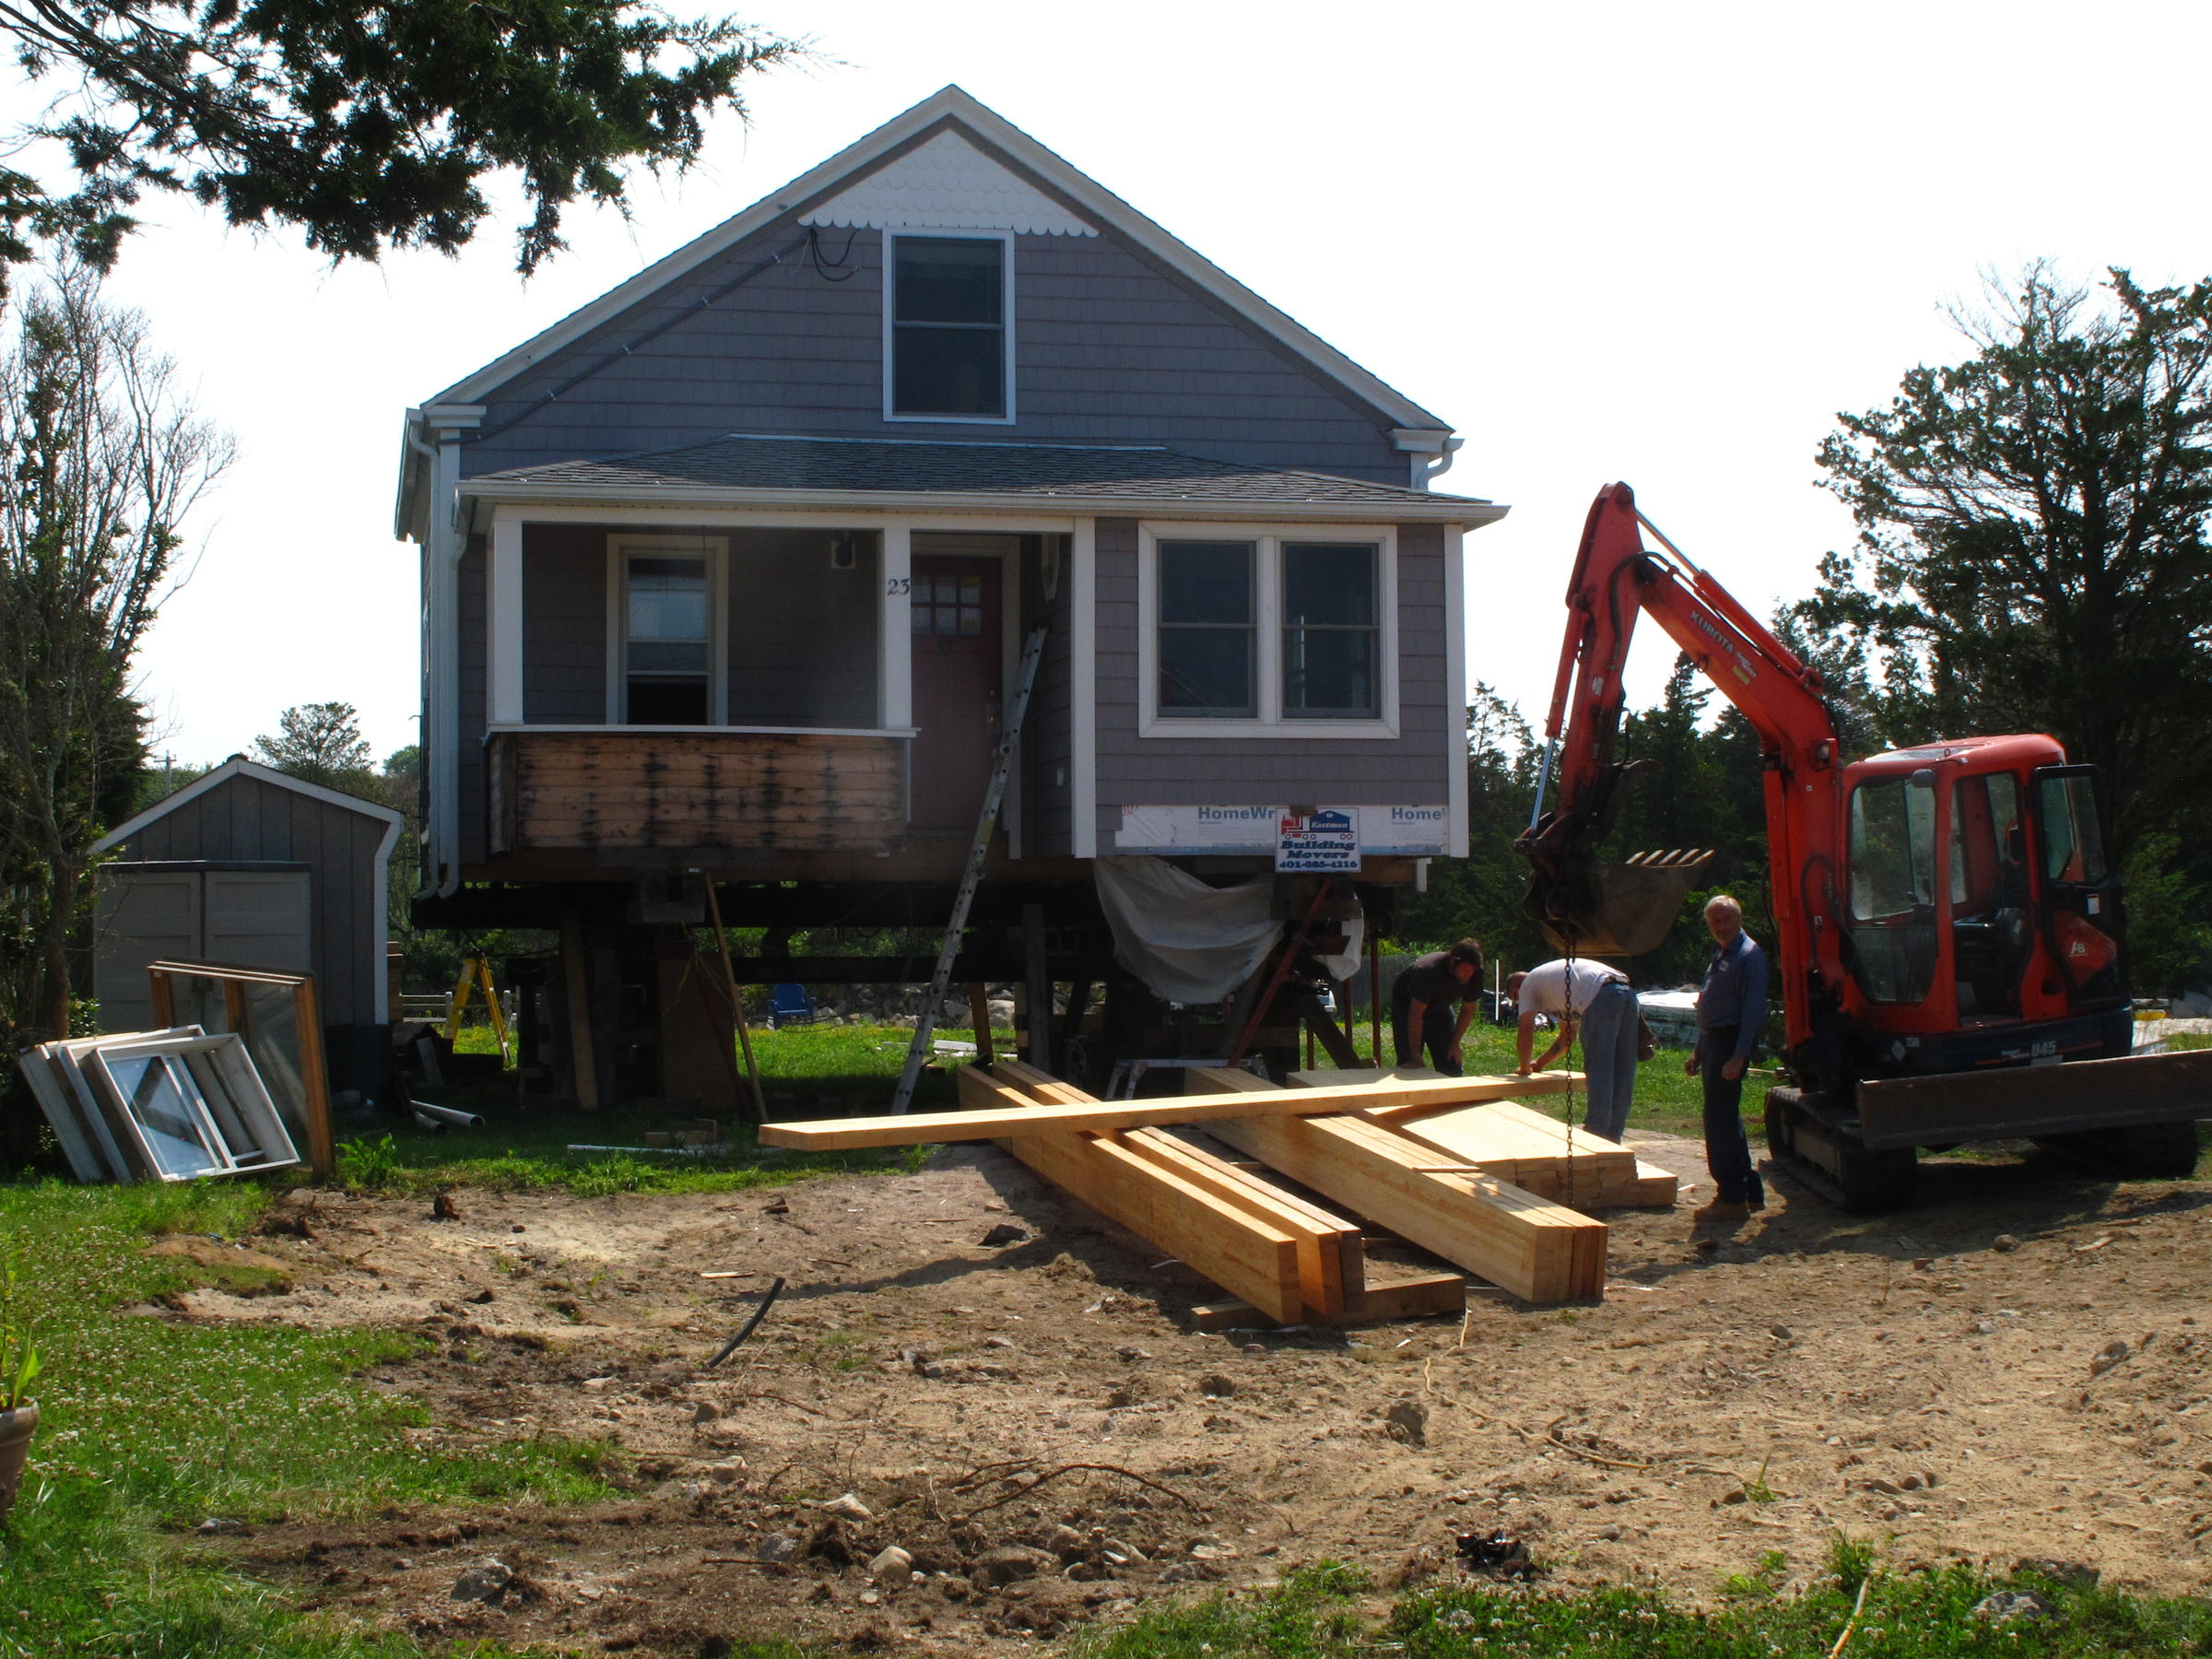 Tom Retanou0027s Three Bedroom House In Misquamicut Is Temporarily Elevated Off  Its Original Foundation, As Work To Permanently Elevate The House 15 Feet  Above ...